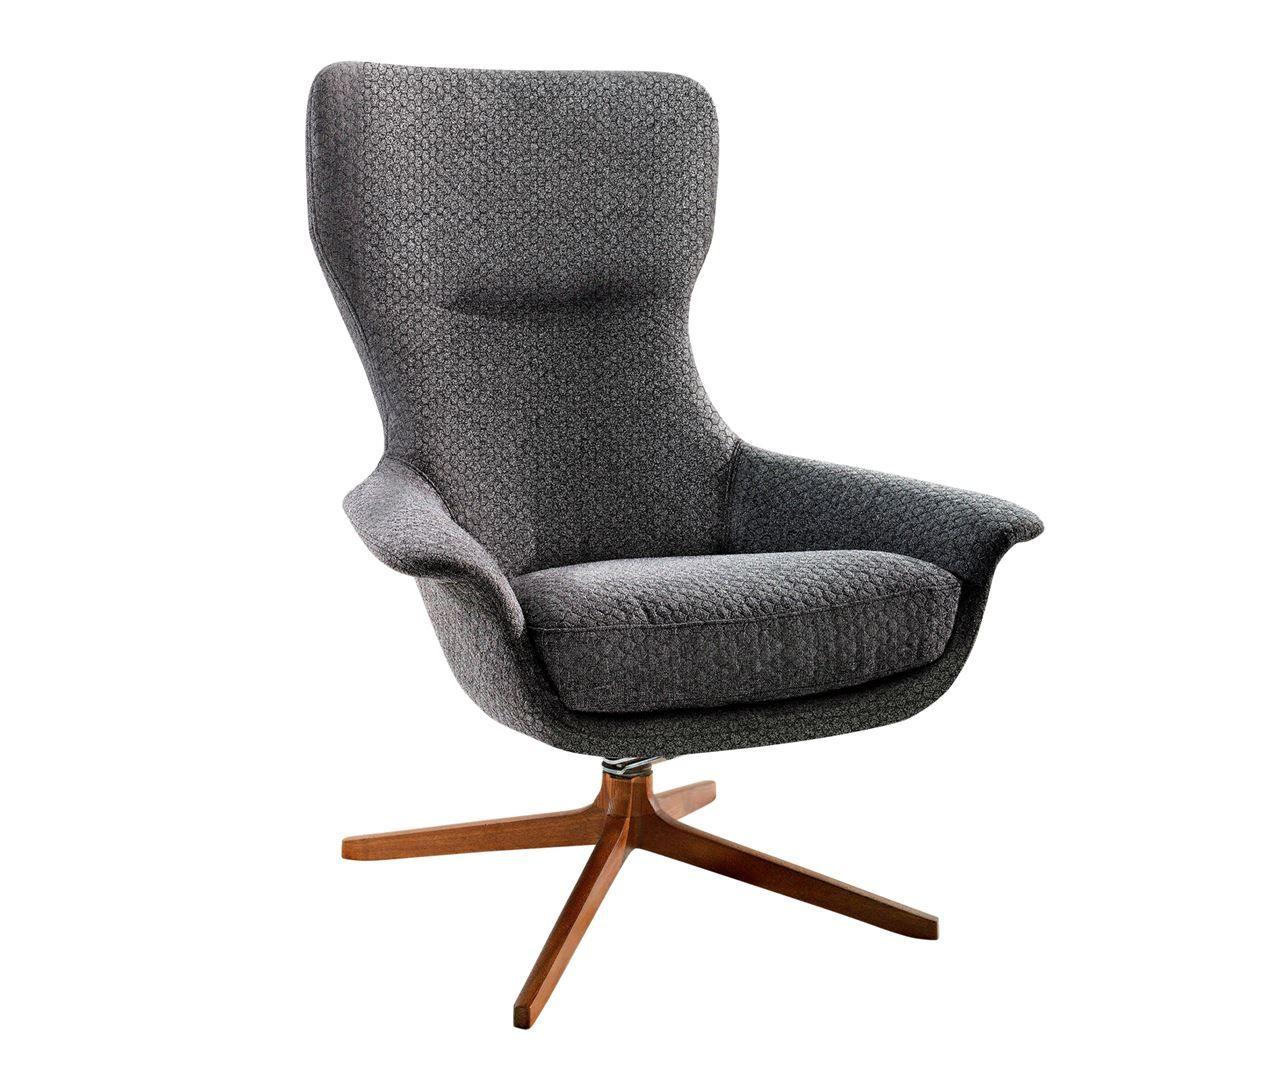 Swivel Chair King Living Arm Dining Chairs Top Picks Stylish Comfy Armchairs For The Home Pinterest Furniture Ideas Armchair Midcentury Modern Target Mid Century